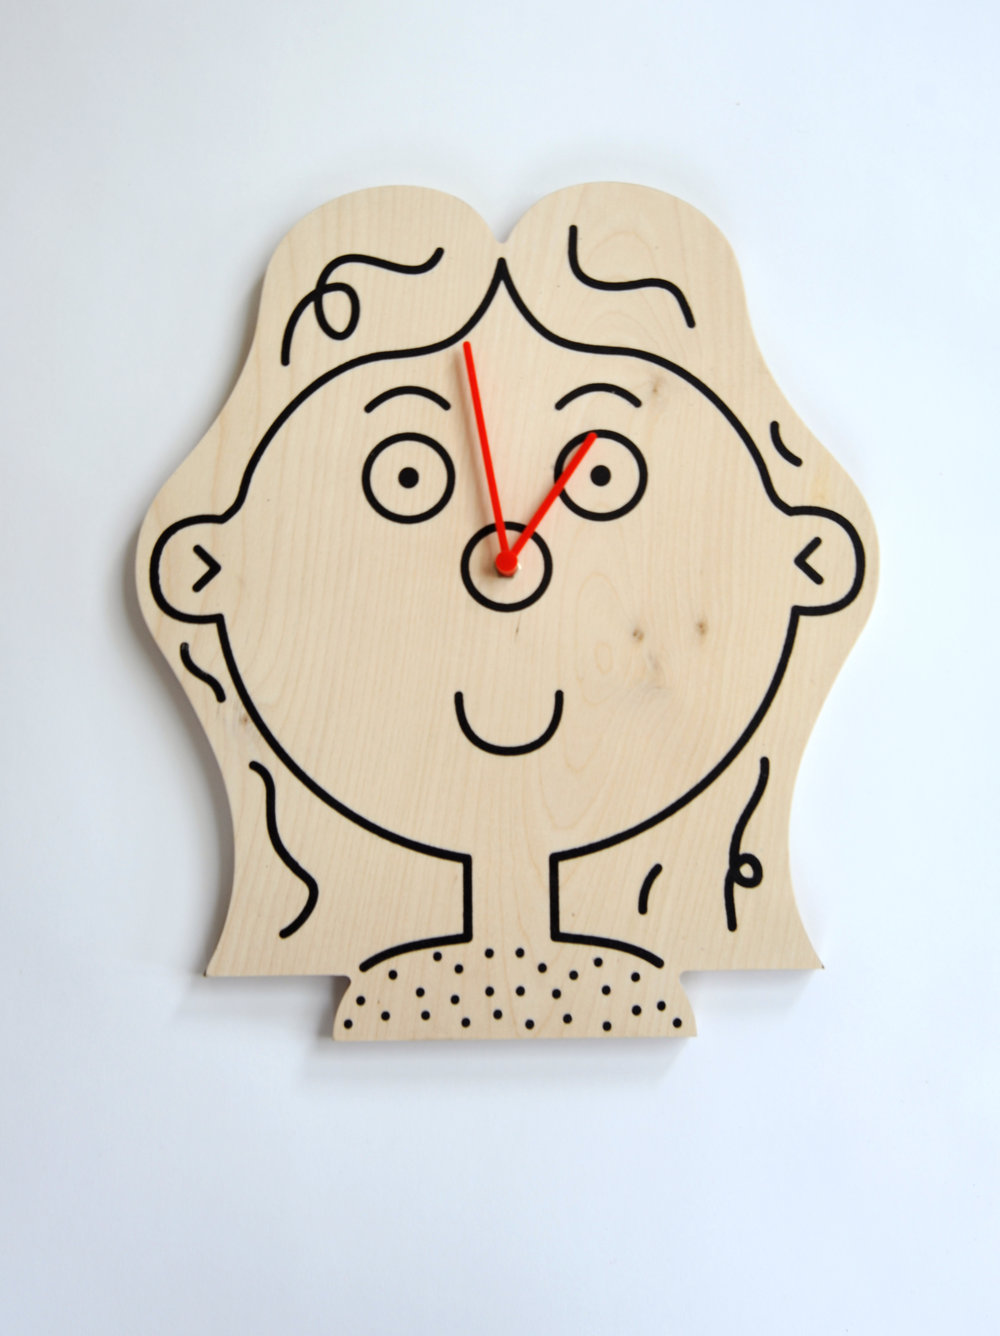 Girl Clock Lawrence Slater Unknown Production UK Contemporary Product Birch Plywood H 15.75 in, W 12 in, D 2 in LIST PRICE: $120 DESIGNER DISCOUNT PRICE: $ LEAD TIME: 3-5 Shipping & handling QUANTITY IN STOCK: 2 ONLINE PLATFORMS: kM Web, Artsy